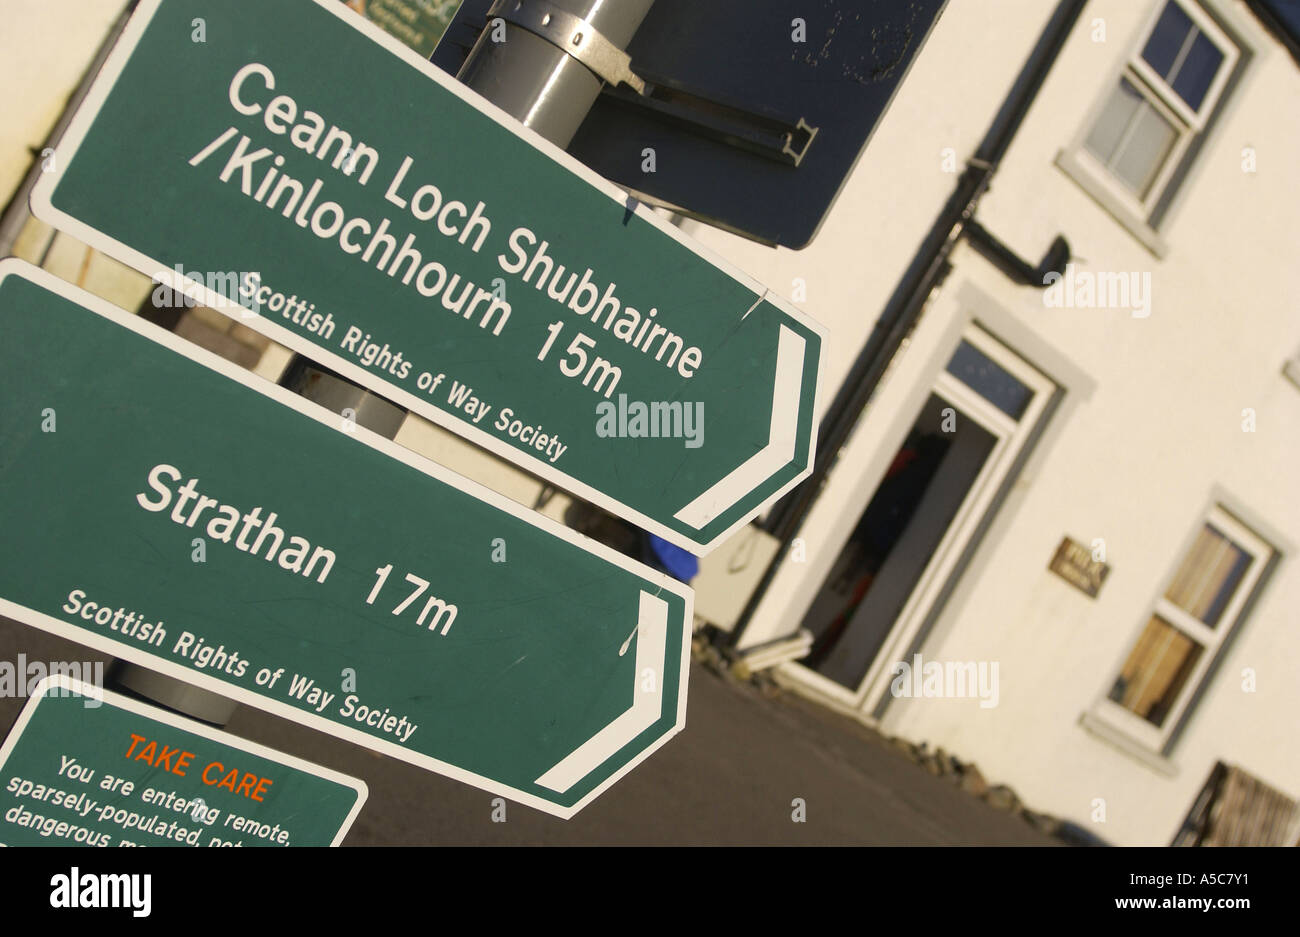 Scottish Rights of Way Society sign outside the Pierhouse Restaurant Knoydart - Stock Image